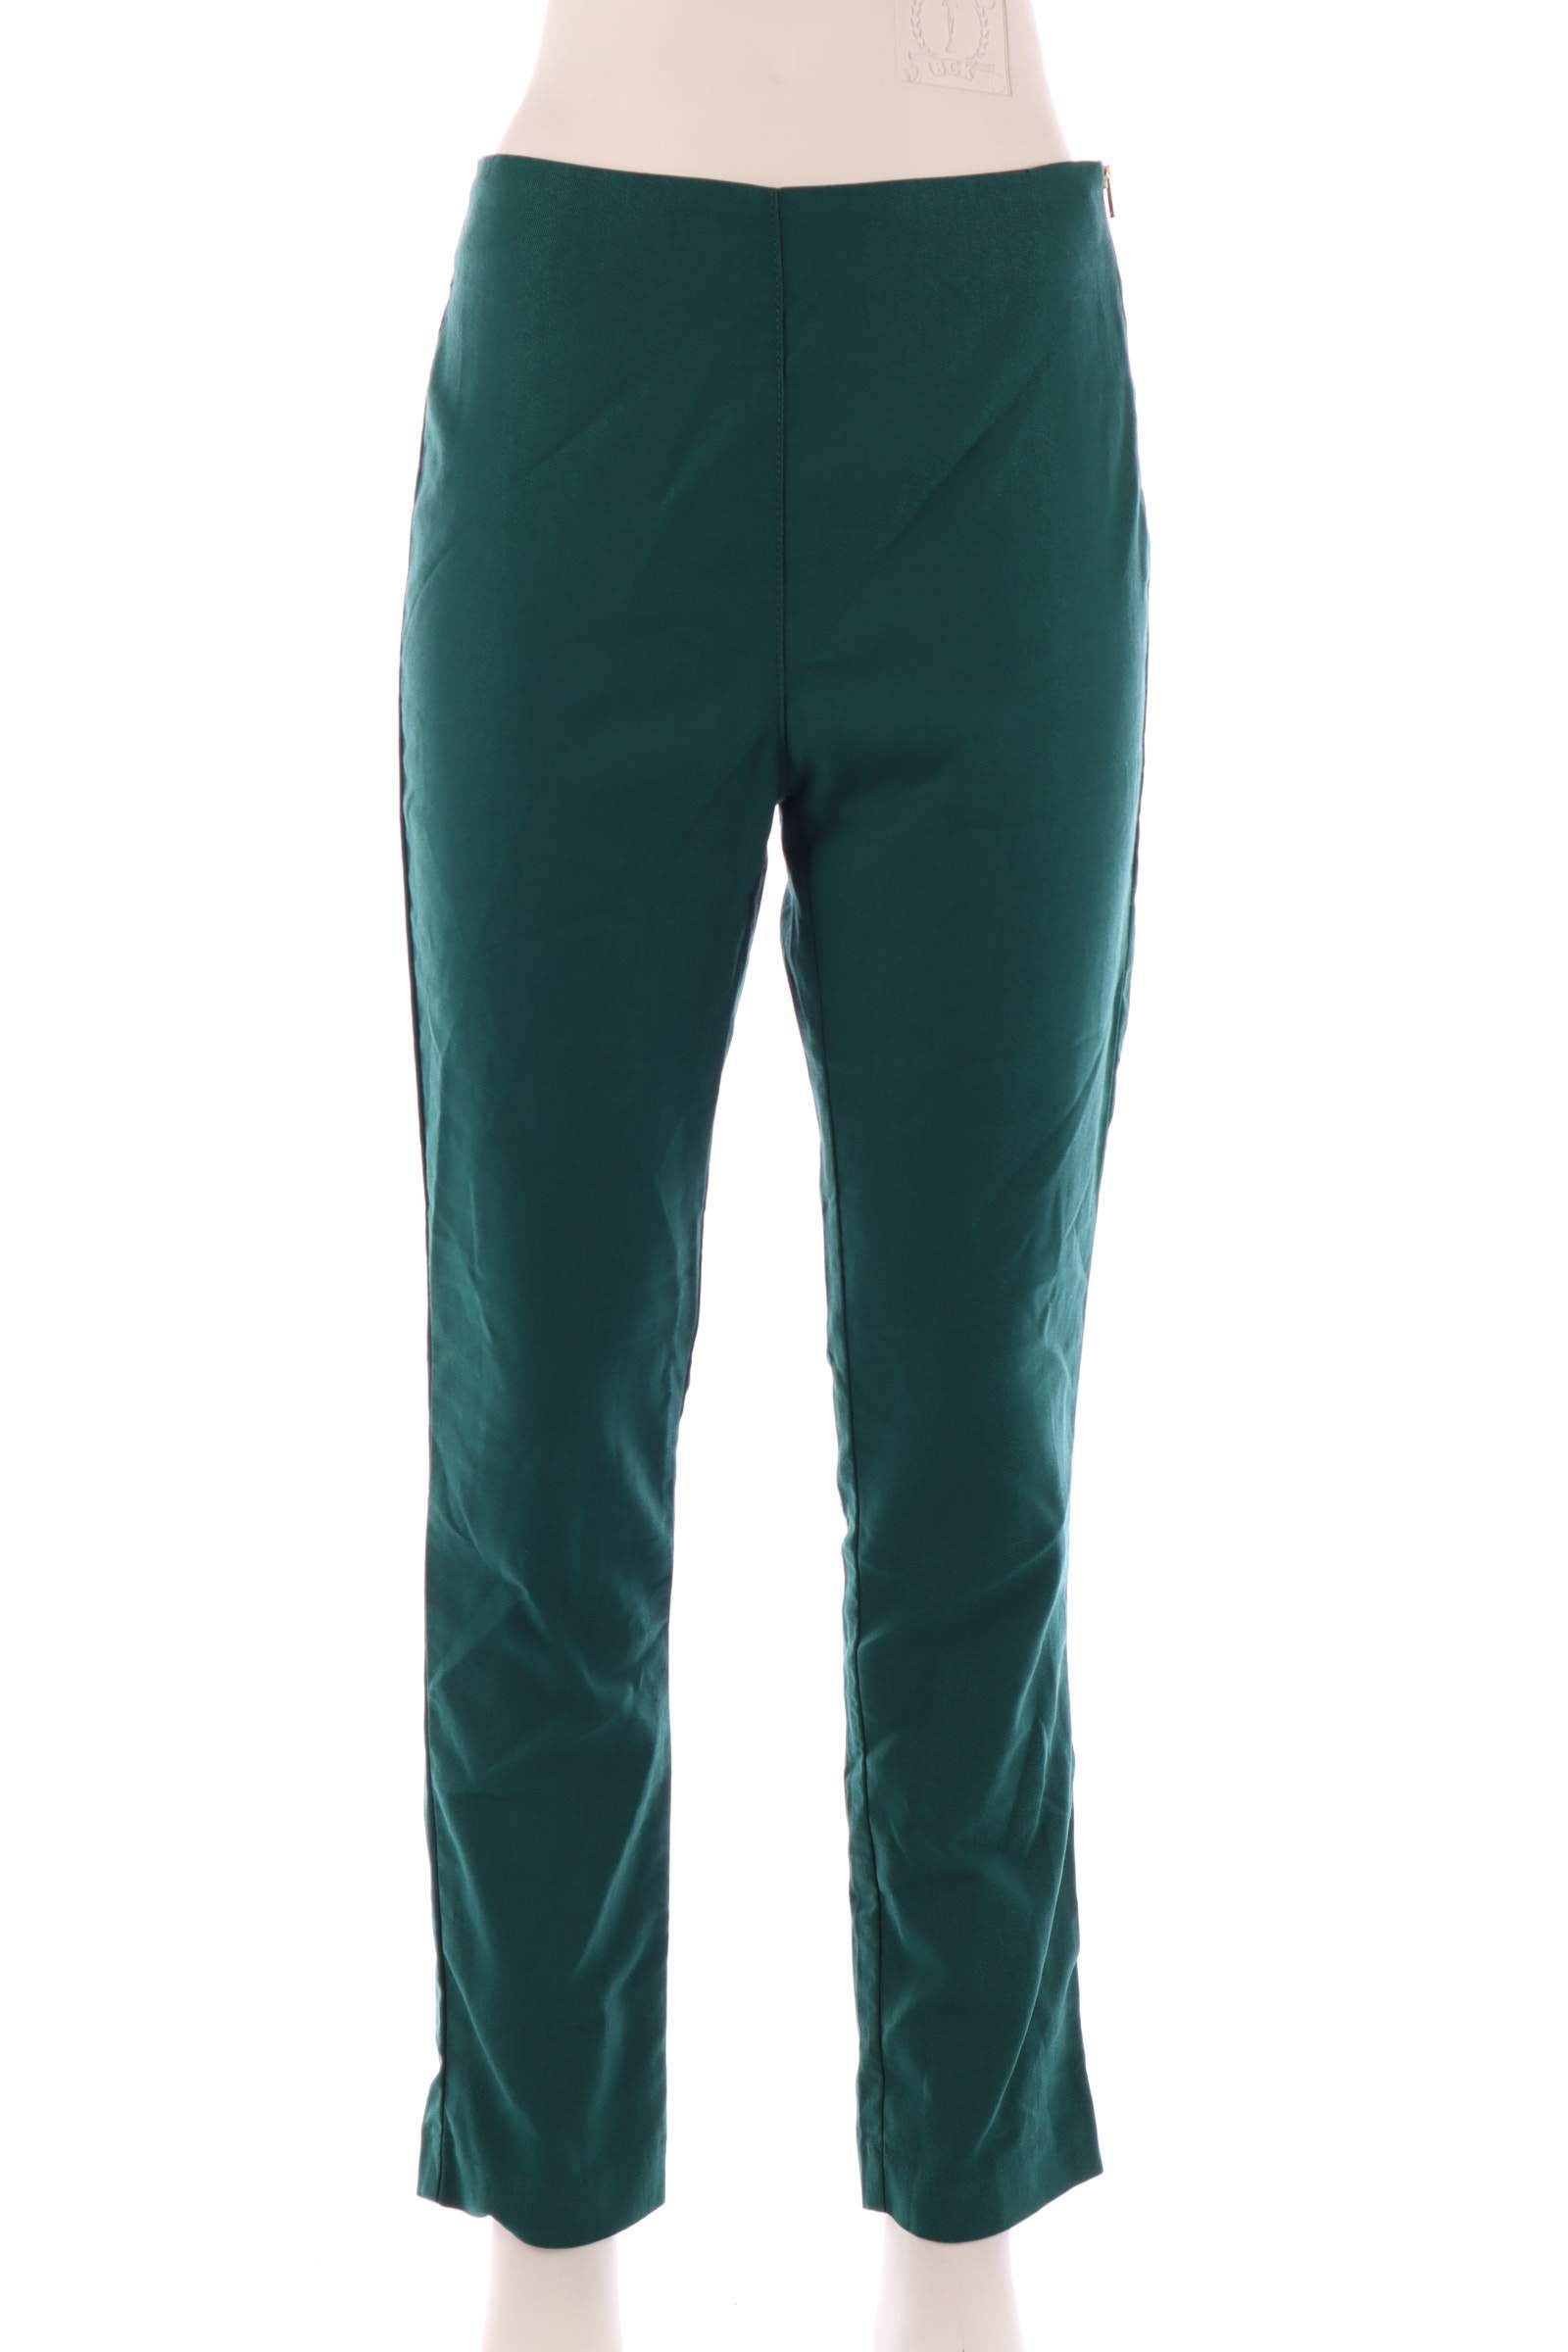 H&M Green Pants - upty.store